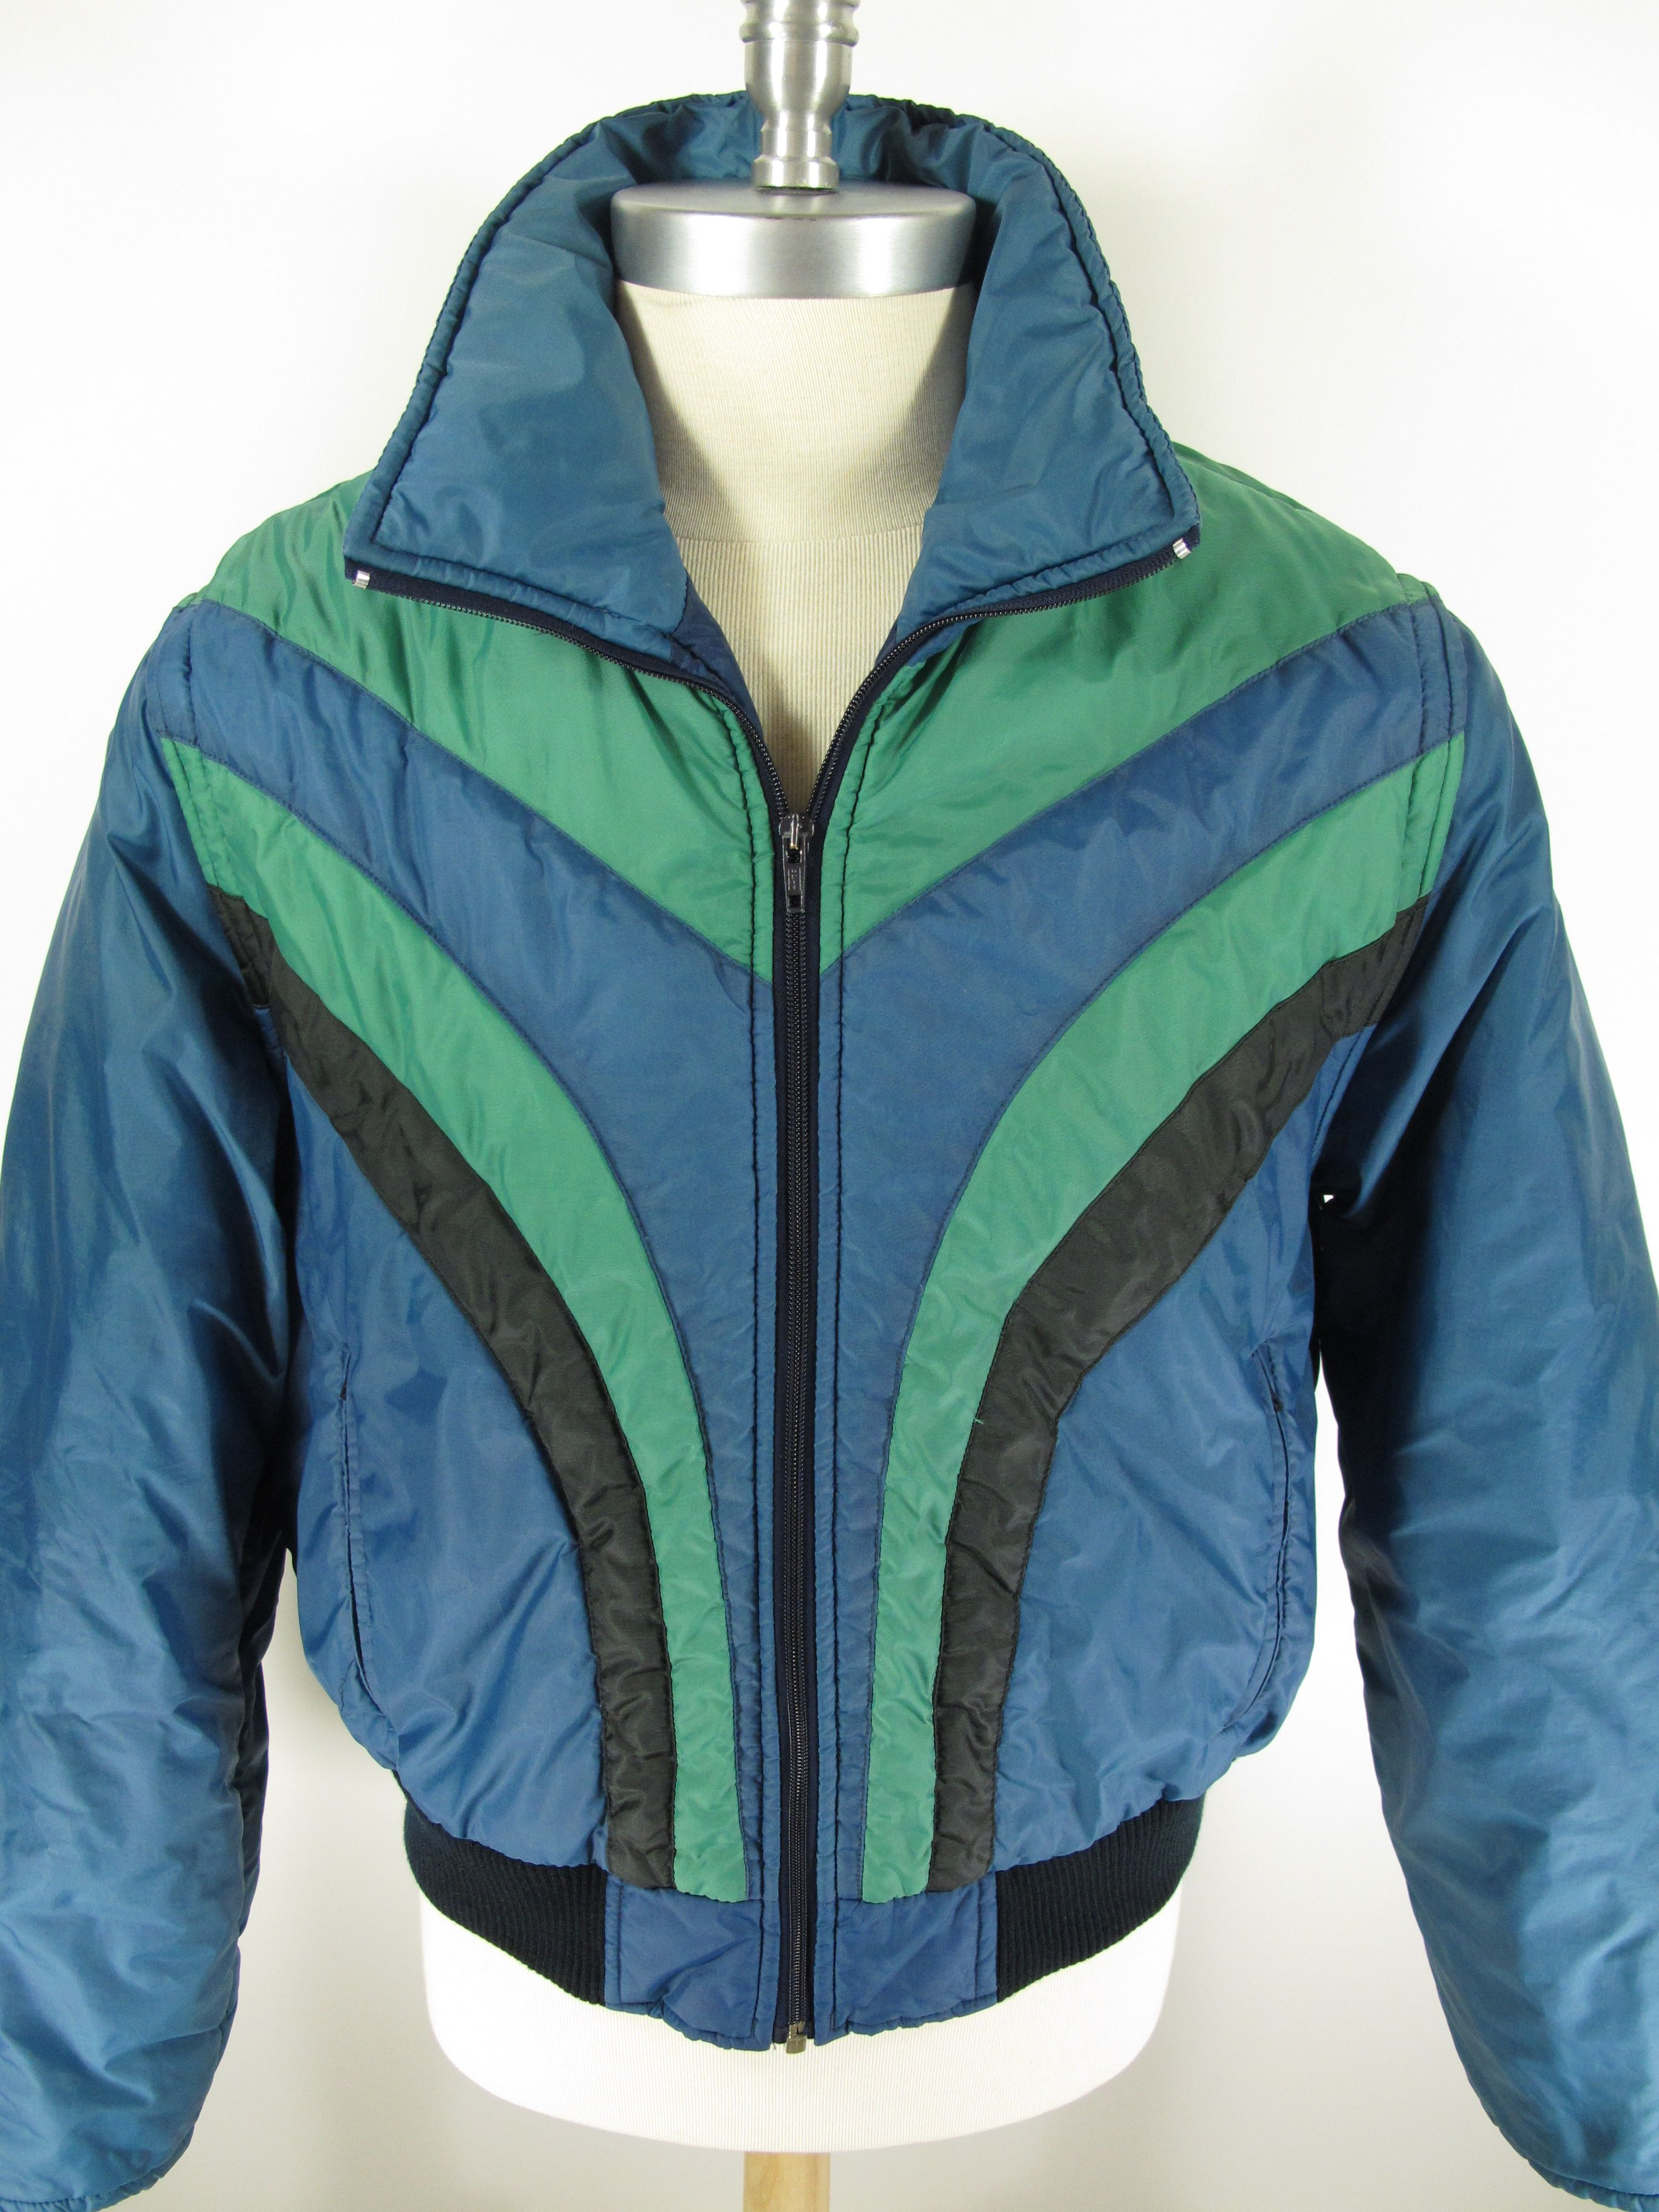 5c8c132f79 Vintage retro ski snowboard winter jacket by Montgomery. Find more men's  and women's authentic vintage clothing at The Clothing Vault. at our  website ...